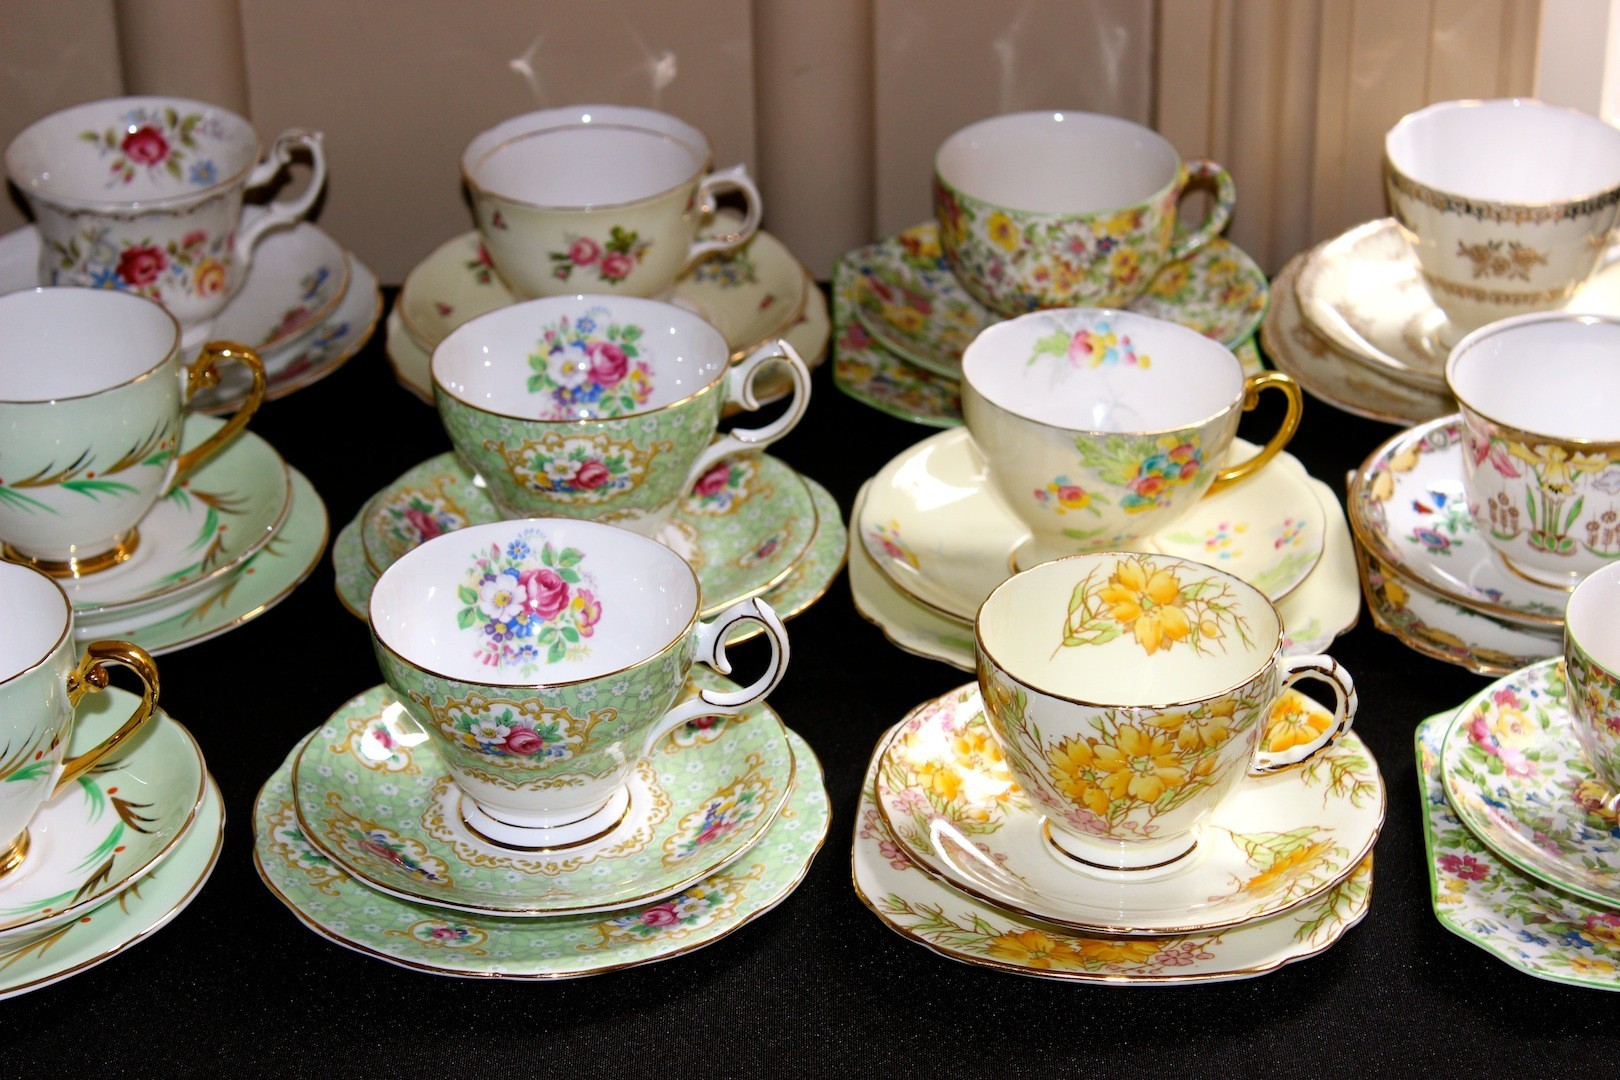 playing to my vintage teacup obsession